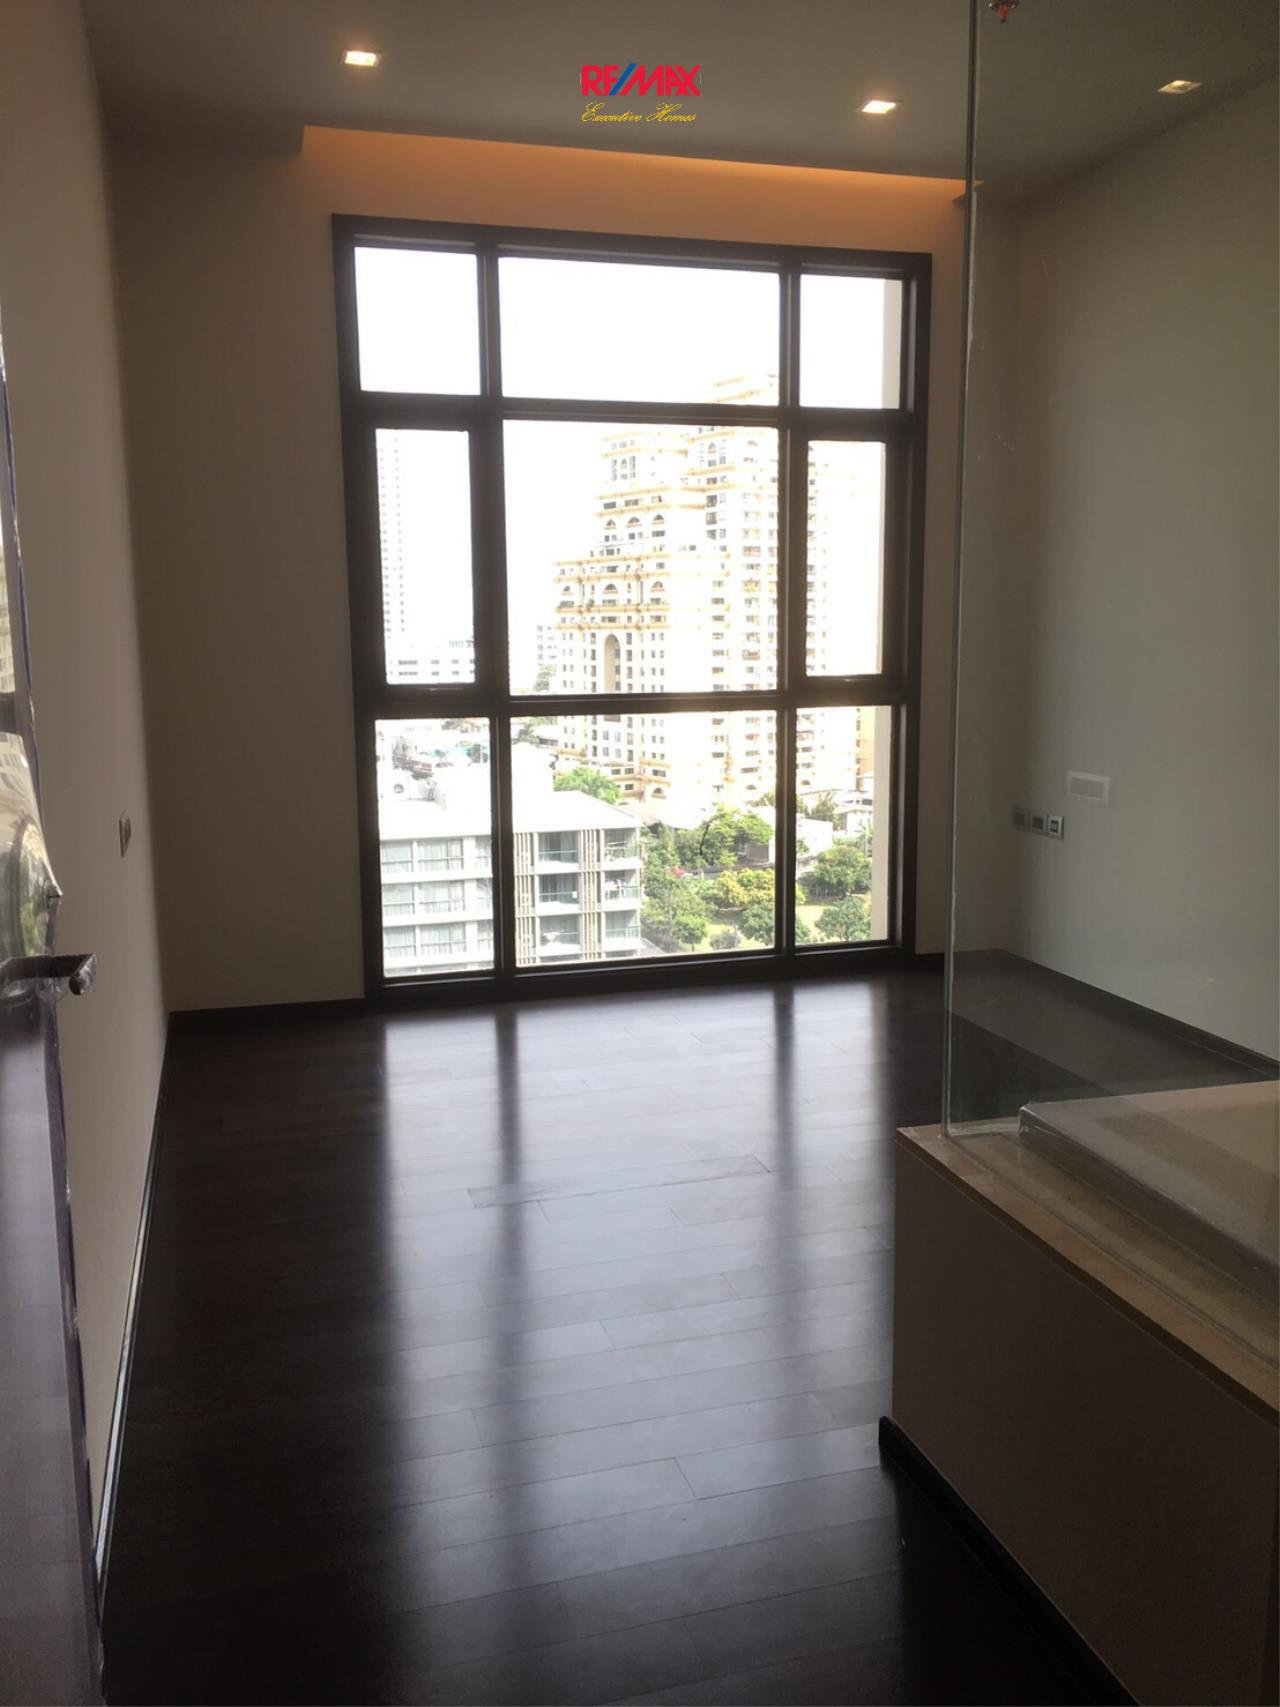 RE/MAX Executive Homes Agency's Spacious 2 Bedroom for Sale XXXIX by Sansiri 4